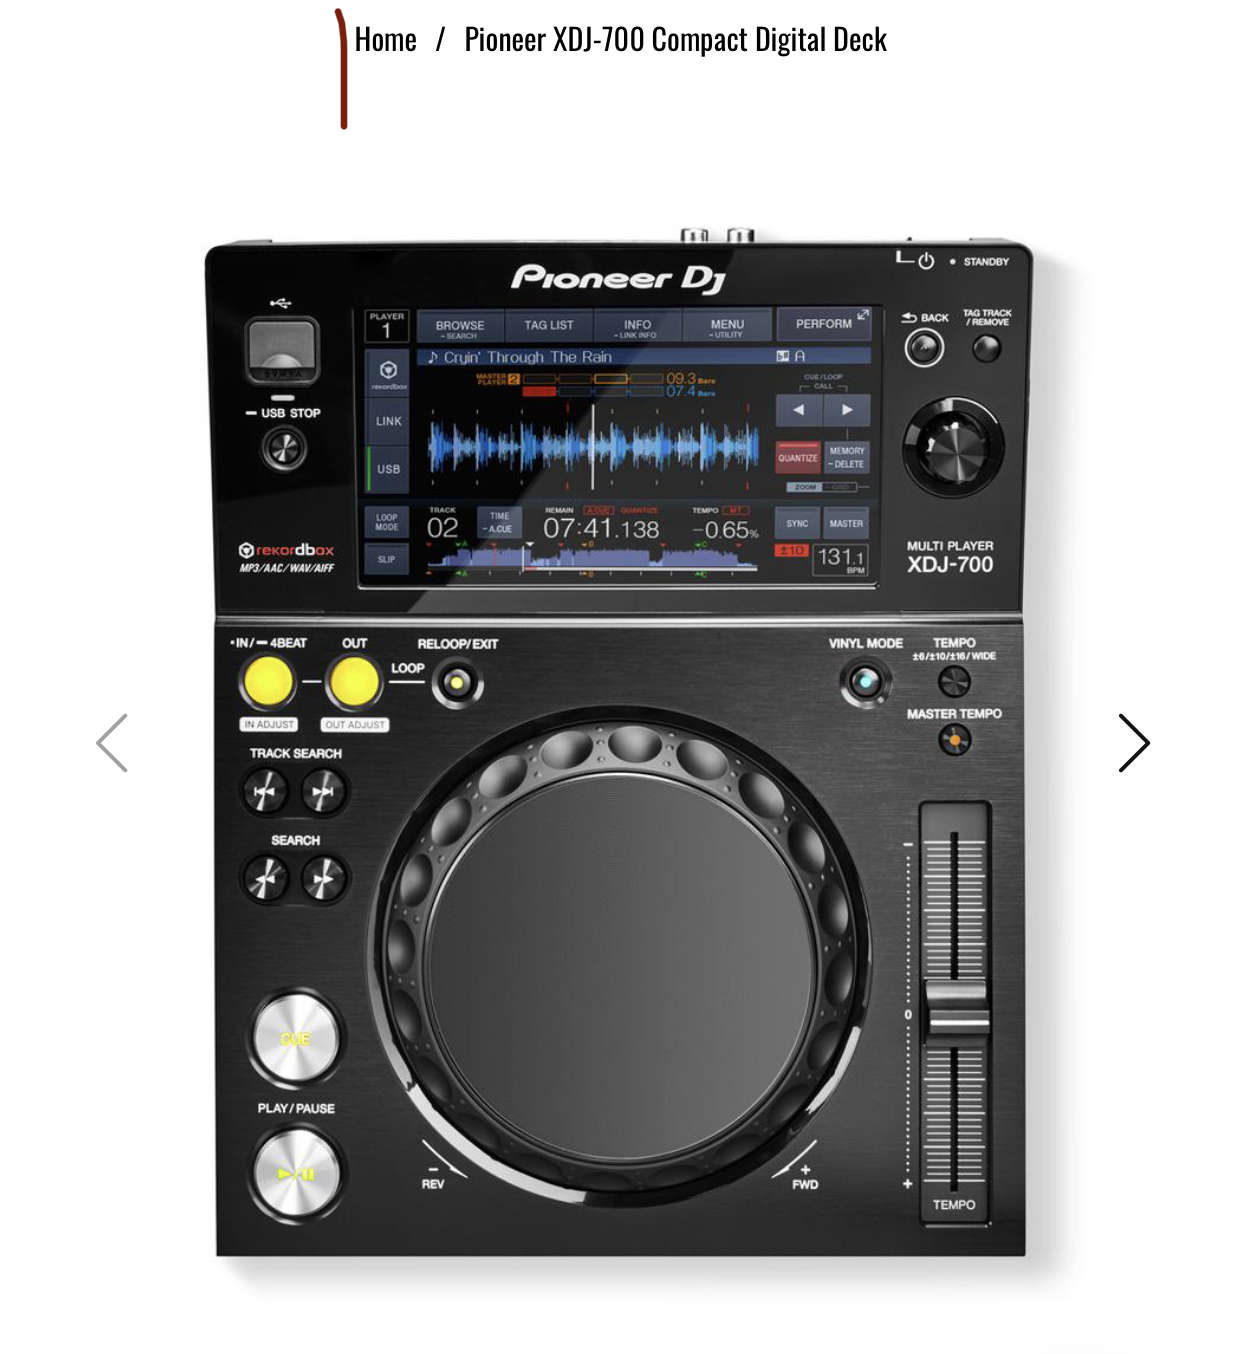 DJ sound and equipment